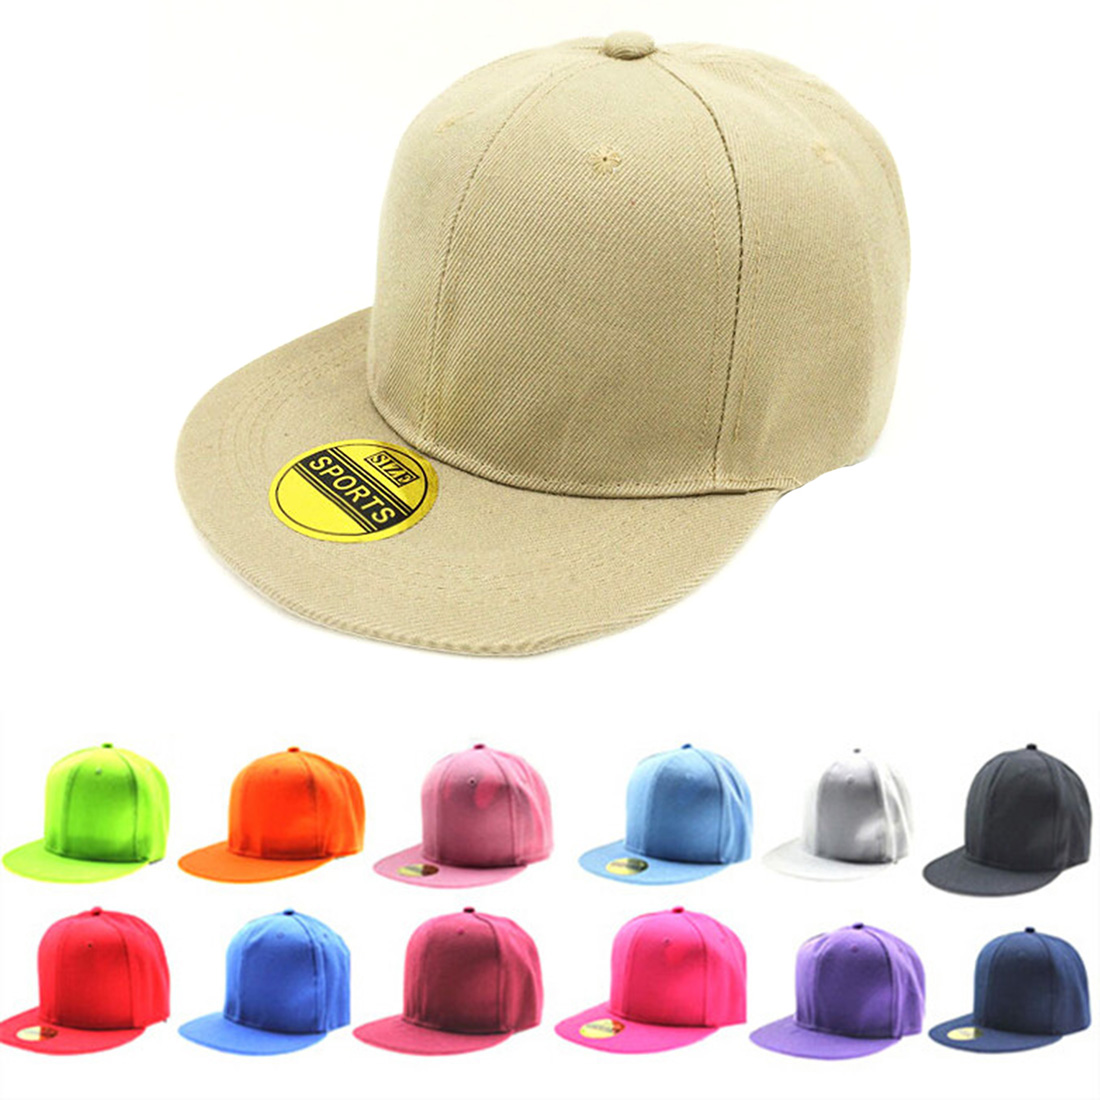 a3186faa54a467 New Arrival Spring Summer Pure Color Caps Flat Hip Hop Style Hat Europe  Style Cowboy Hats Baseball Cap 15 Colors Adjustable